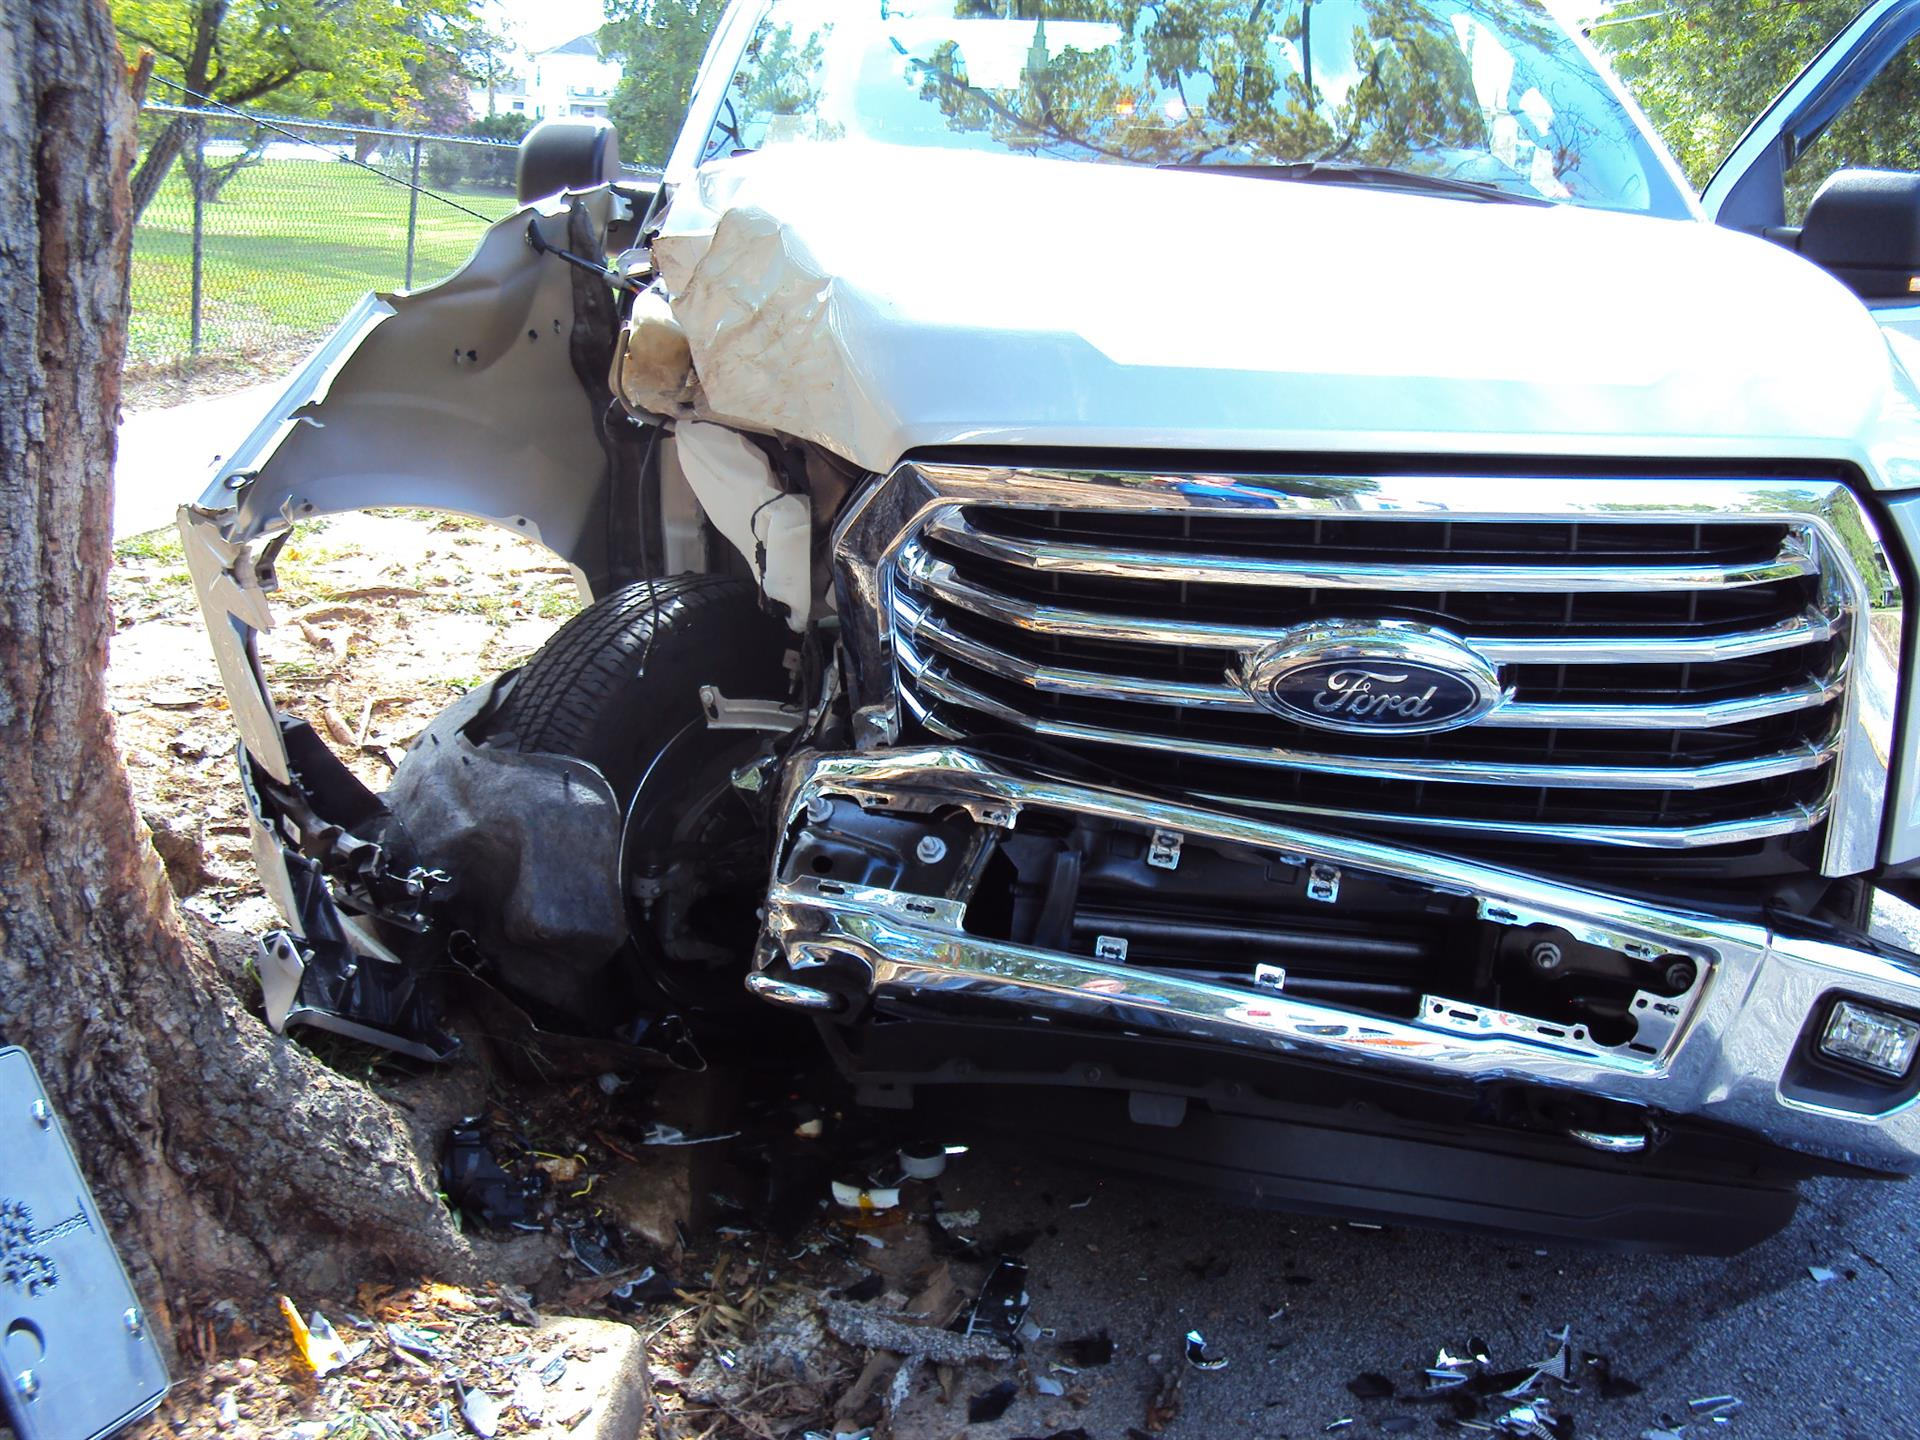 Truck crashed against tree with dislodged front tire